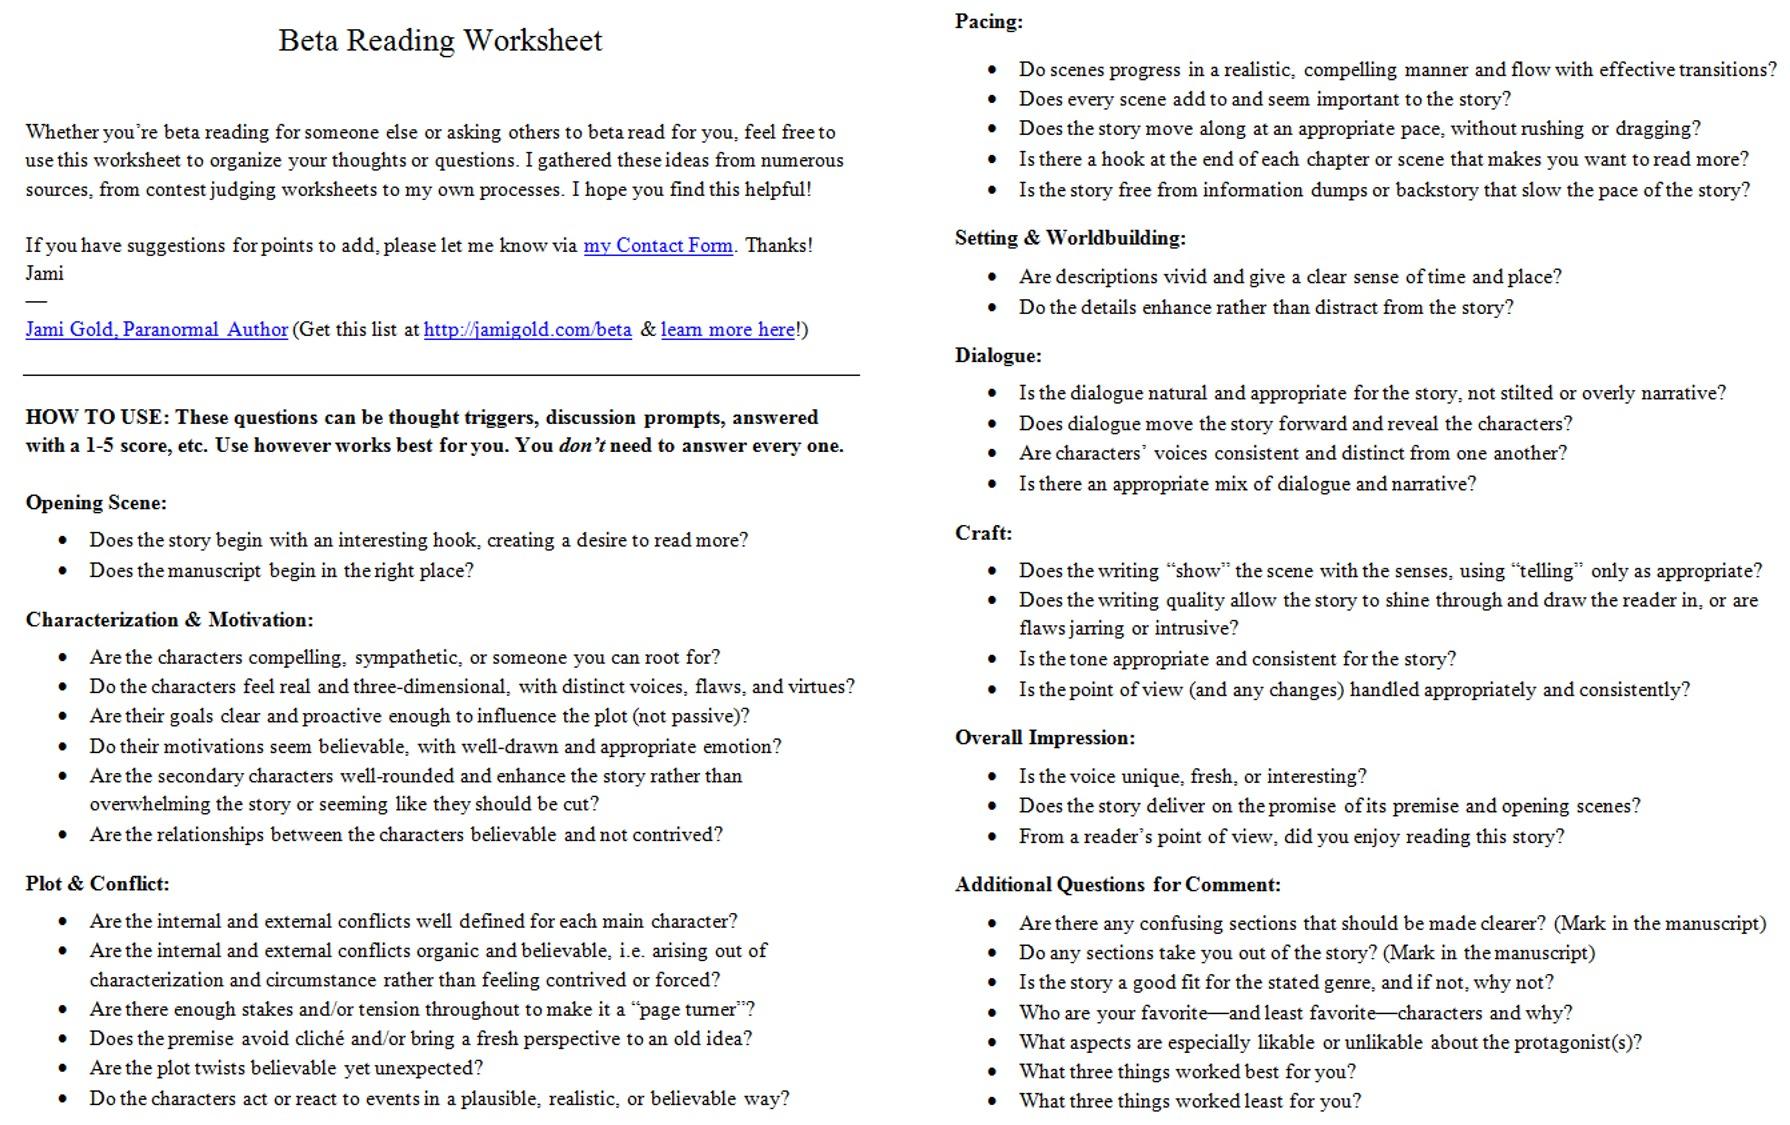 Aldiablosus  Inspiring Worksheets For Writers  Jami Gold Paranormal Author With Remarkable Screen Shot Of The Twopage Beta Reading Worksheet With Endearing Thomas The Train Worksheets Also Linear Equation Word Problem Worksheet In Addition Absolute Value Inequalities Worksheets And Mlk Worksheet As Well As Music Theory Worksheets For Kids Additionally Blank Number Line Worksheets From Jamigoldcom With Aldiablosus  Remarkable Worksheets For Writers  Jami Gold Paranormal Author With Endearing Screen Shot Of The Twopage Beta Reading Worksheet And Inspiring Thomas The Train Worksheets Also Linear Equation Word Problem Worksheet In Addition Absolute Value Inequalities Worksheets From Jamigoldcom